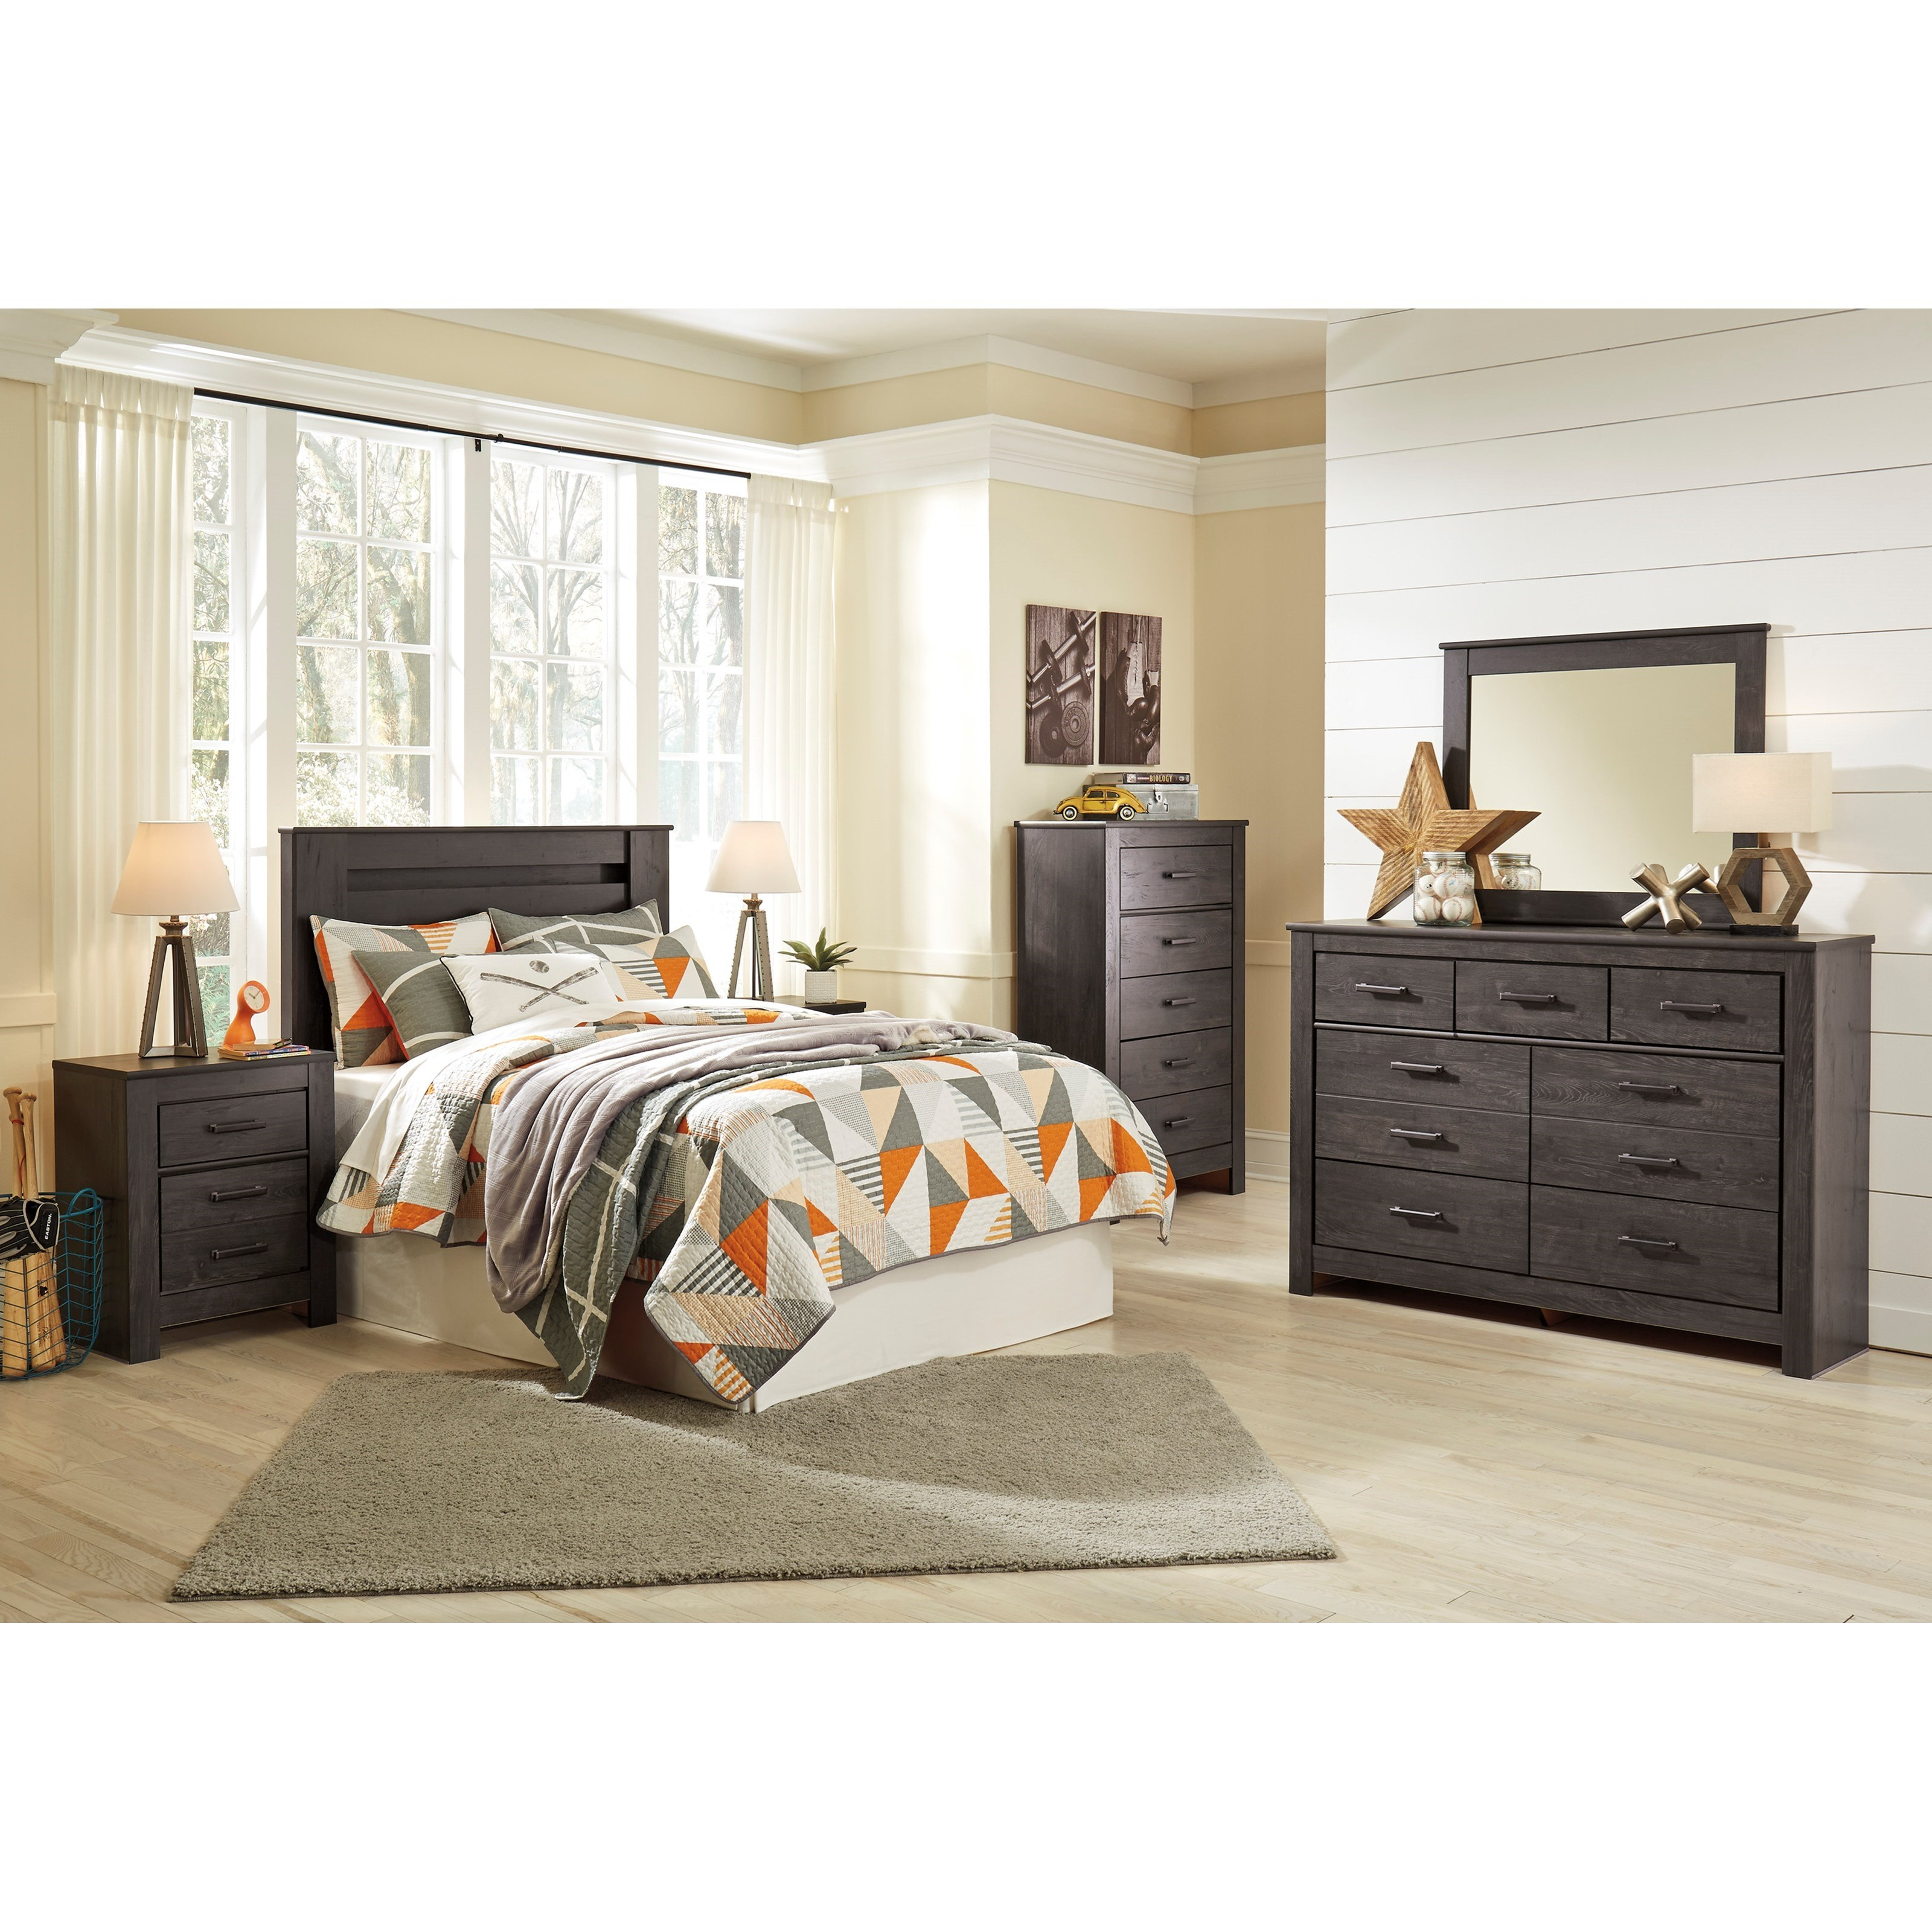 Signature design by ashley brinxton full bedroom group - Ashley furniture full bedroom sets ...